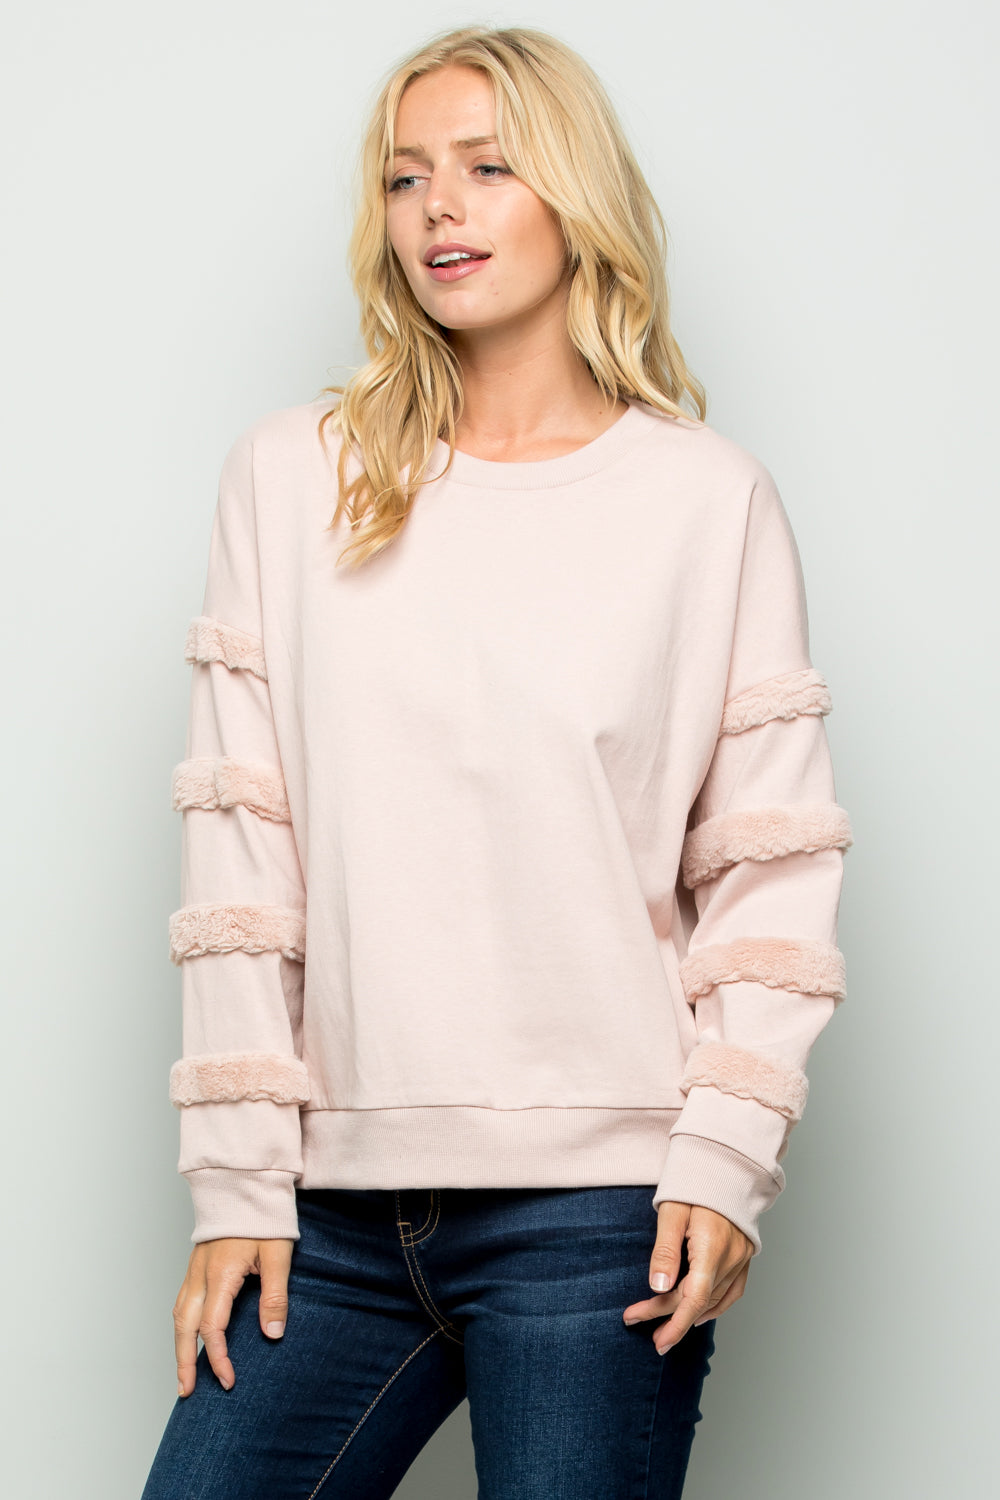 T2712 Faux Fur Trim Pullover Top - Blush